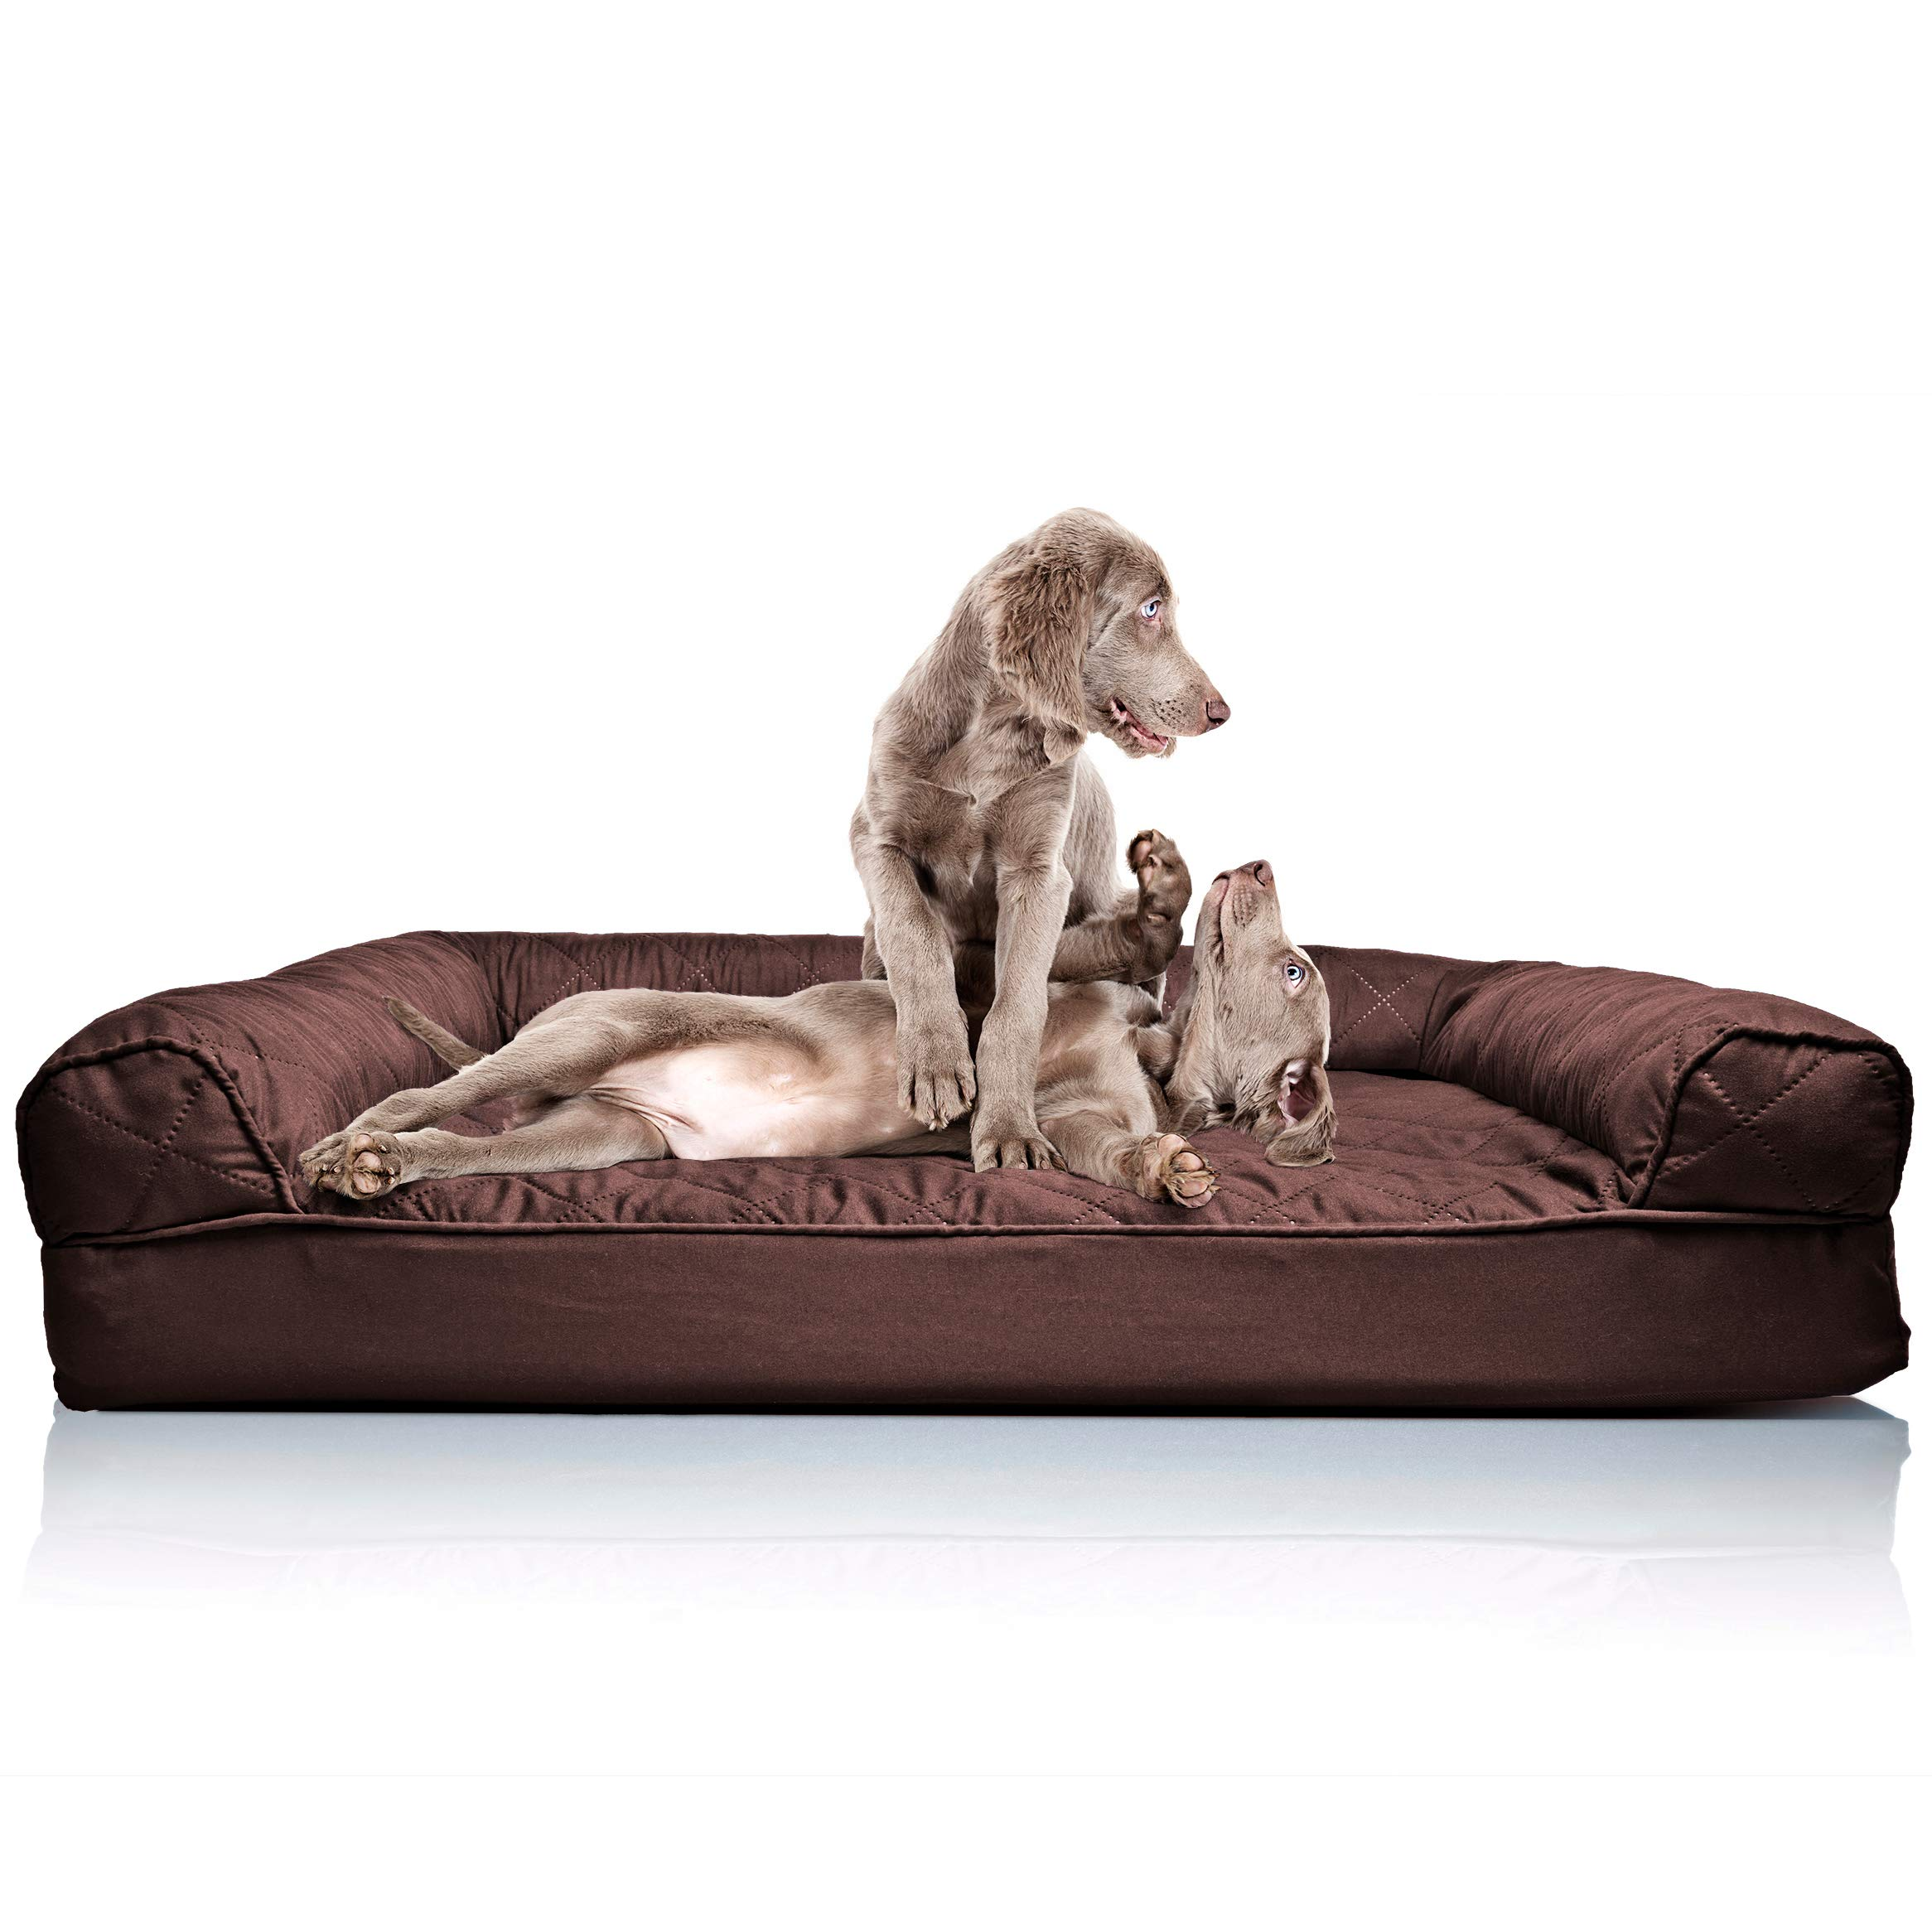 Furhaven Pet Dog Bed | Orthopedic Quilted Traditional Sofa-Style Living Room Couch Pet Bed w/ Removable Cover for Dogs & Cats, Coffee, Jumbo by Furhaven